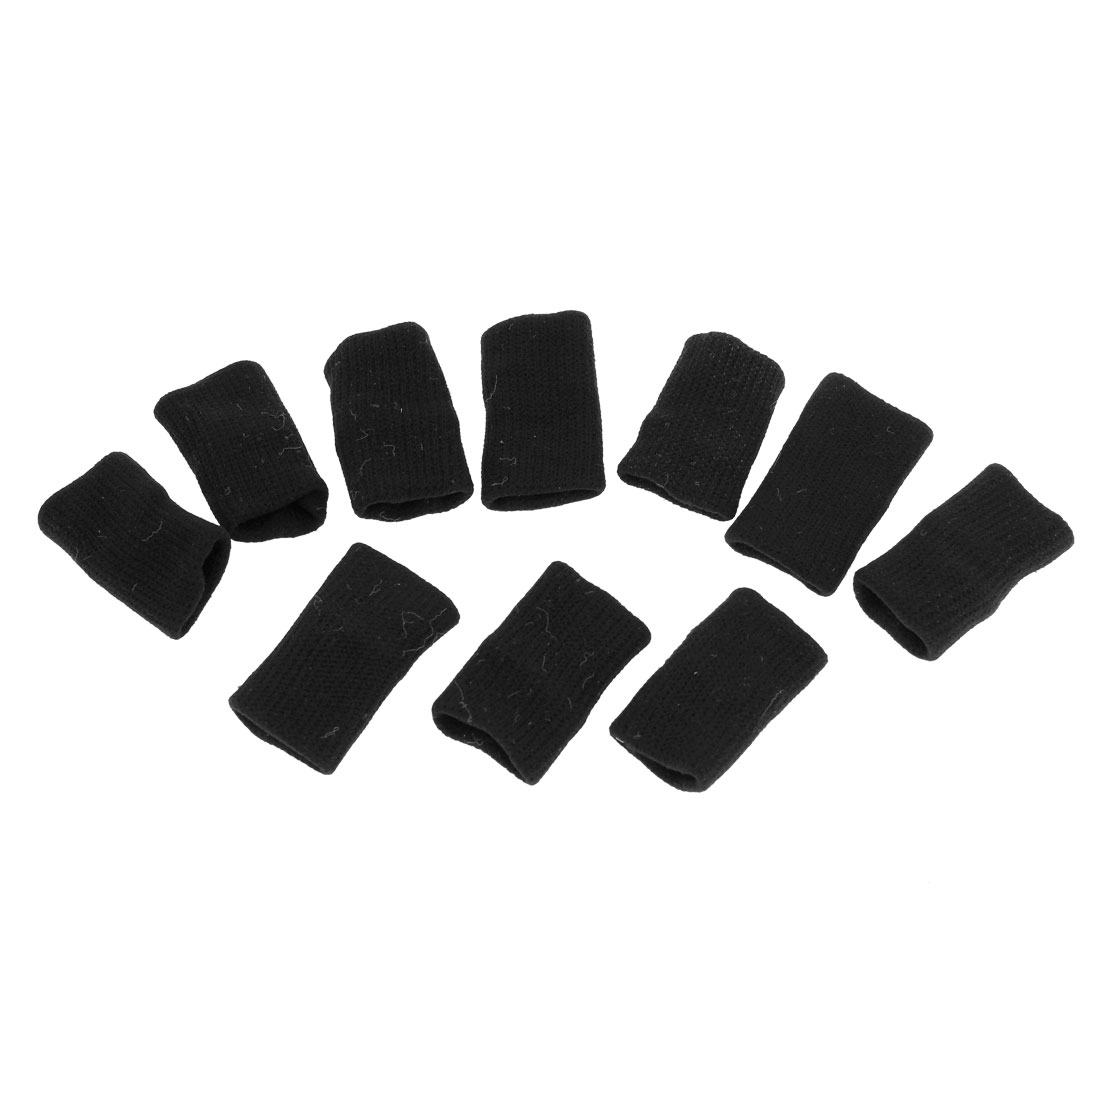 10 Pcs Sports Black Nylon Spandex Finger Sleeves Cover